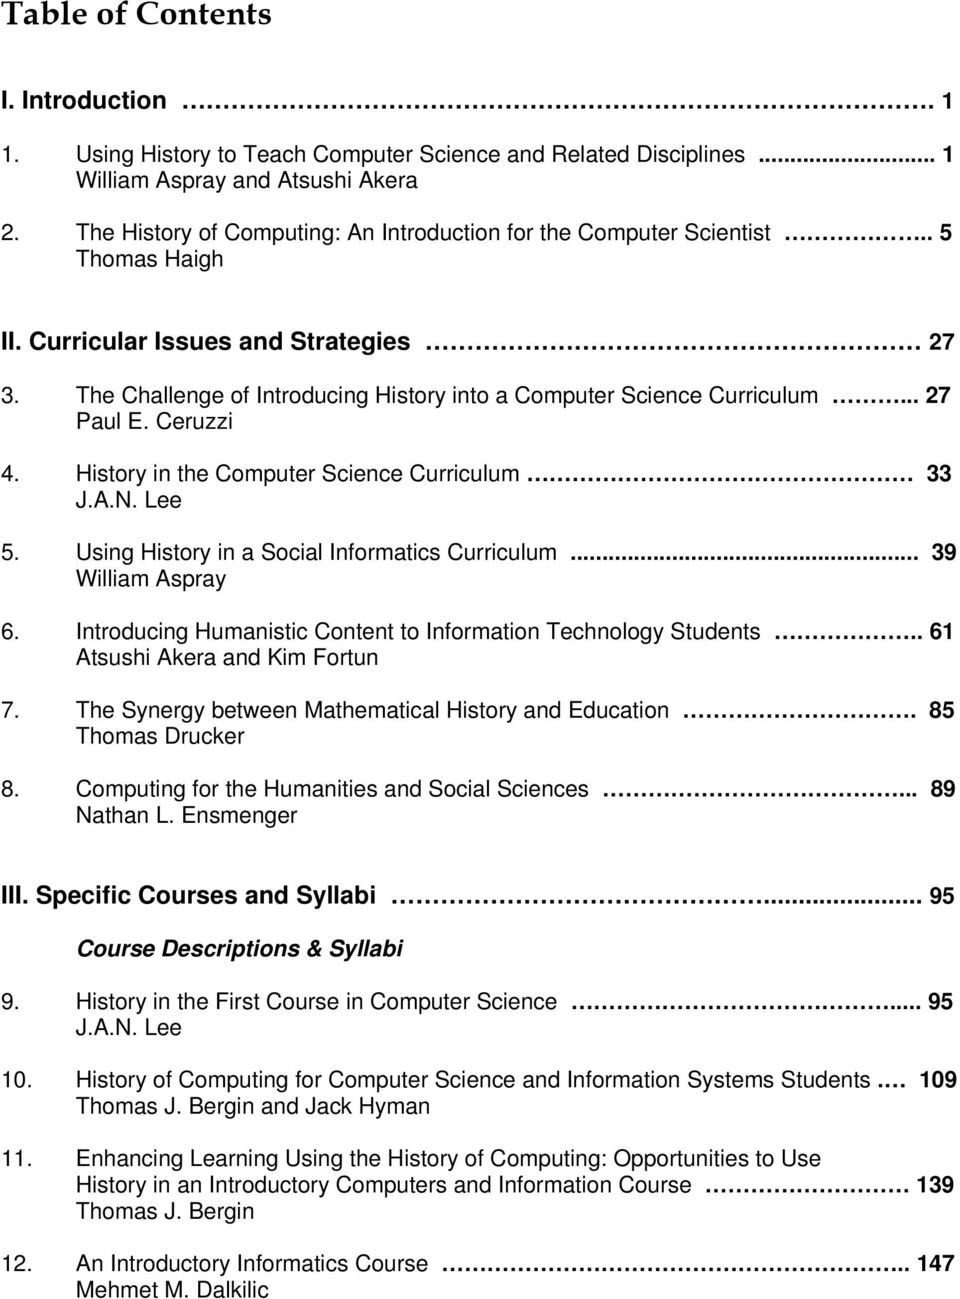 The Challenge of Introducing History into a Computer Science Curriculum... 27 Paul E. Ceruzzi 4. History in the Computer Science Curriculum 33 J.A.N. Lee 5.